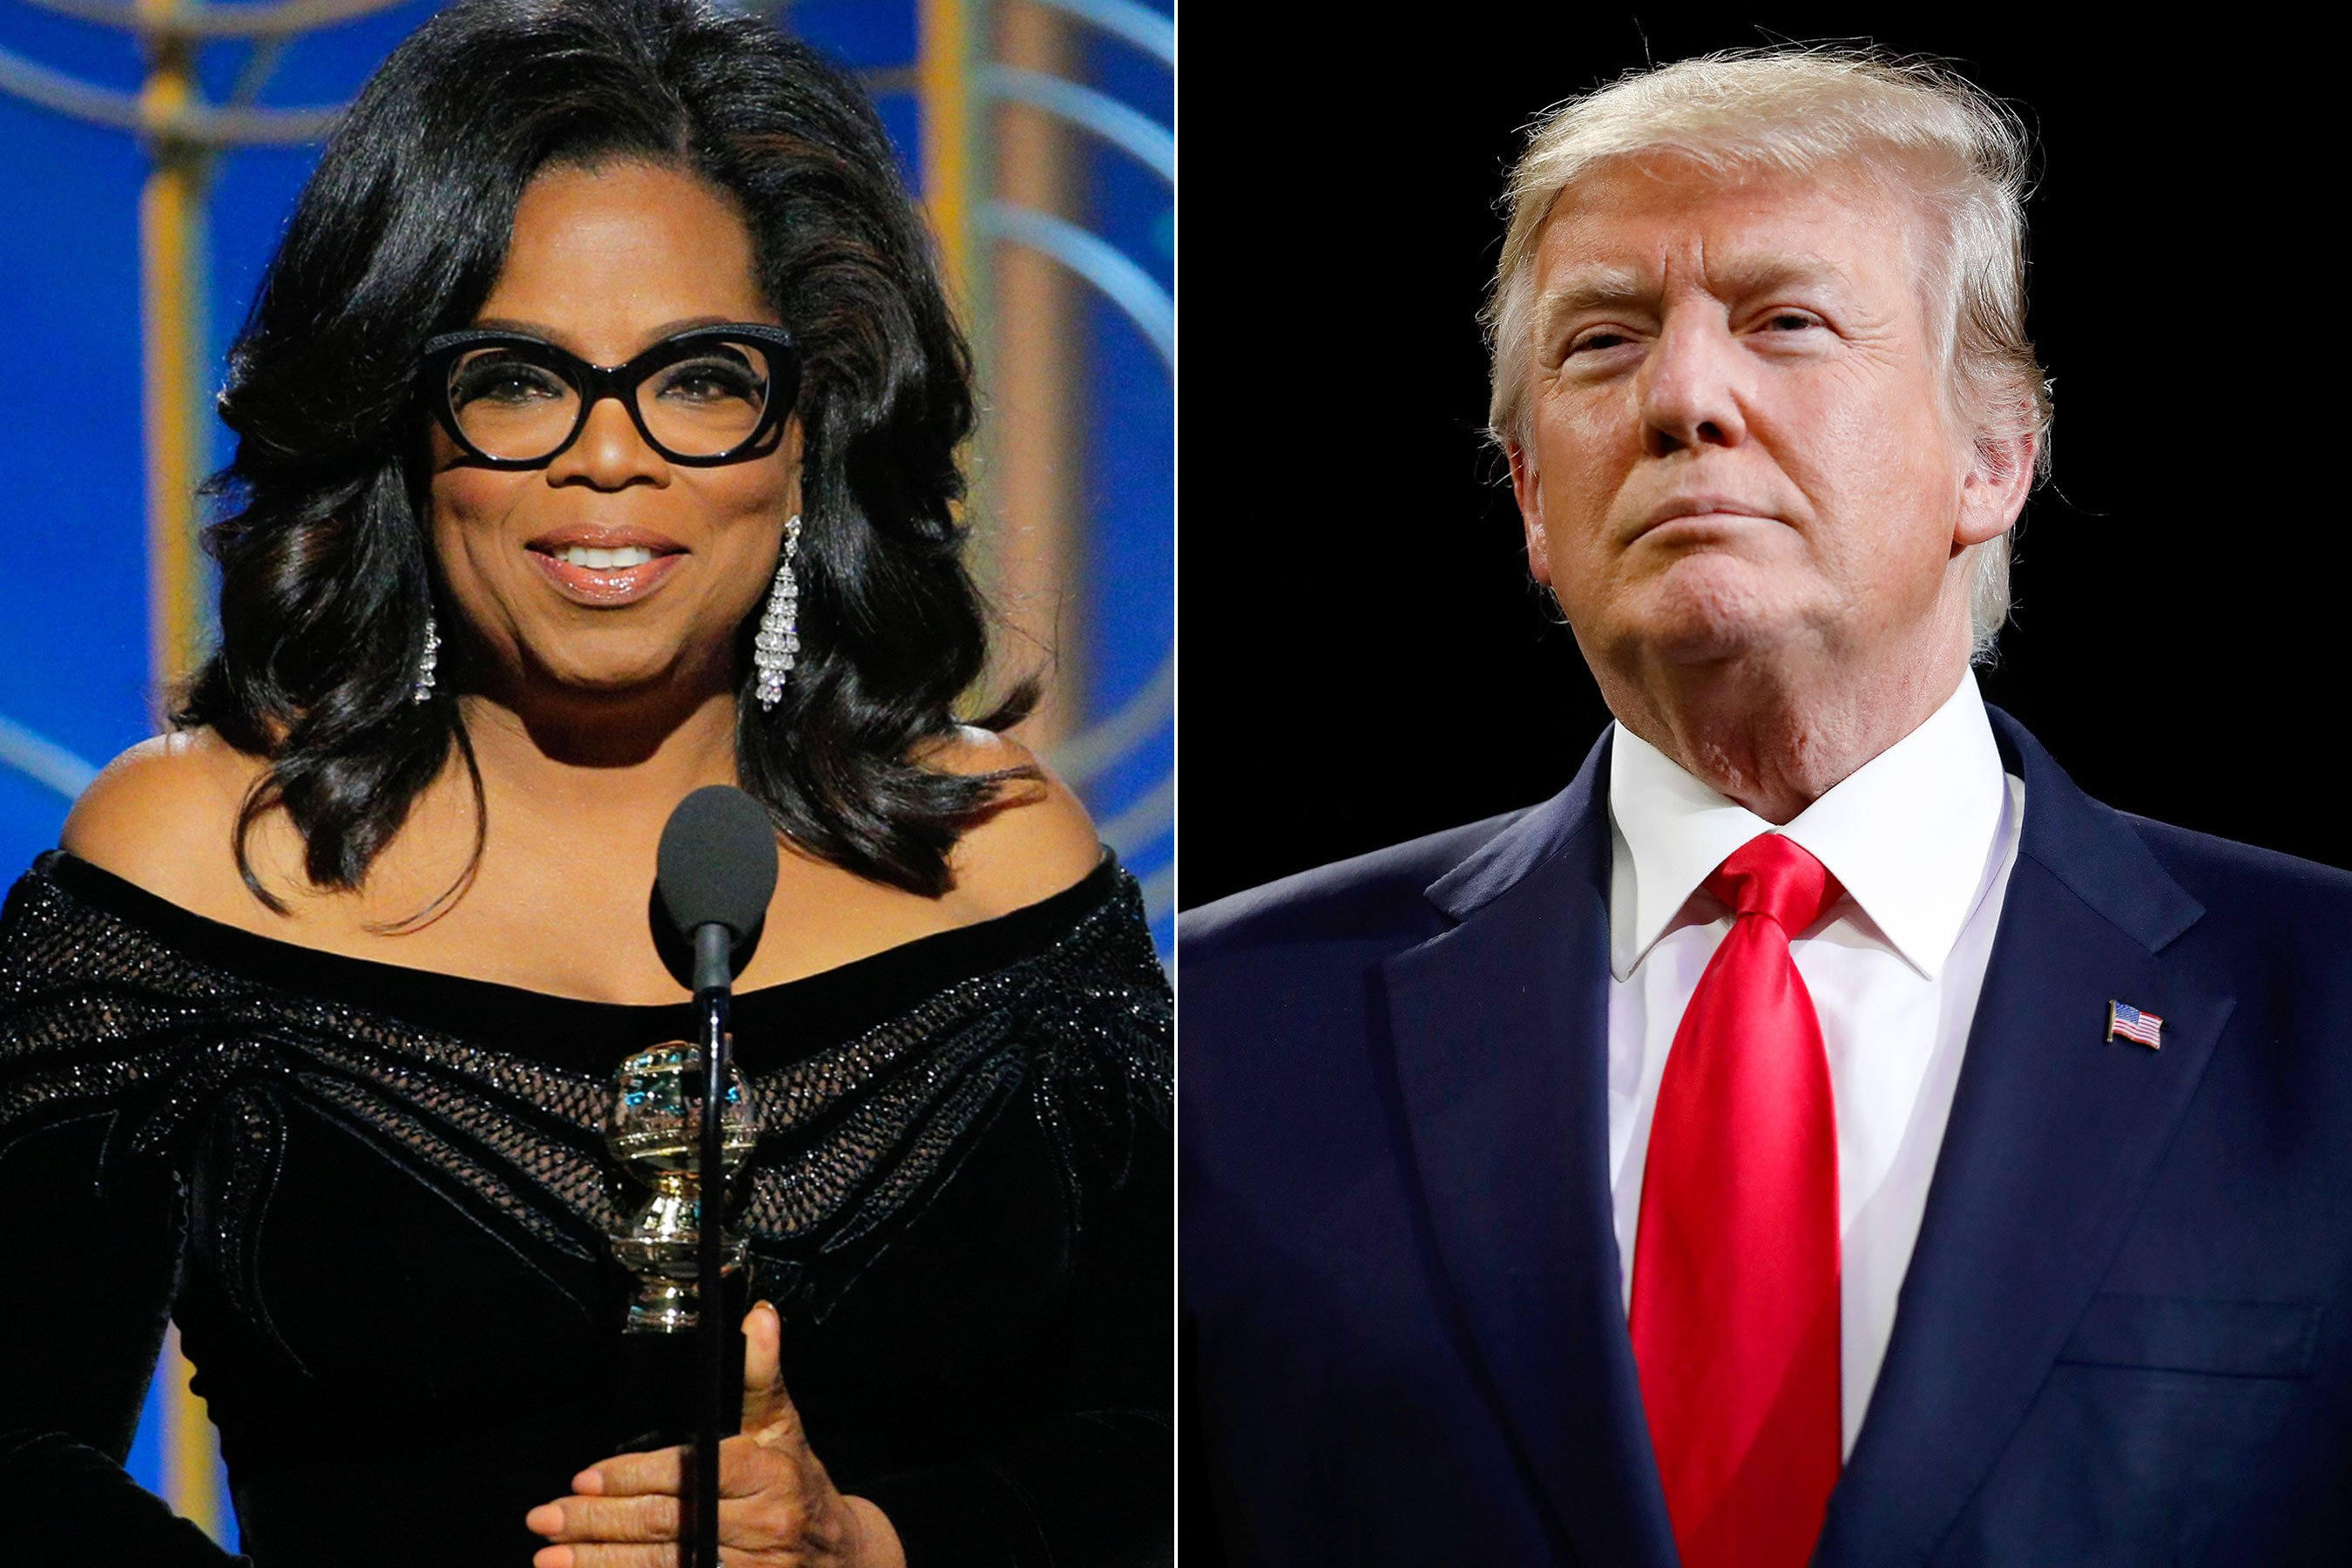 Poll: Oprah would easily beat Trump in 2020 matchup